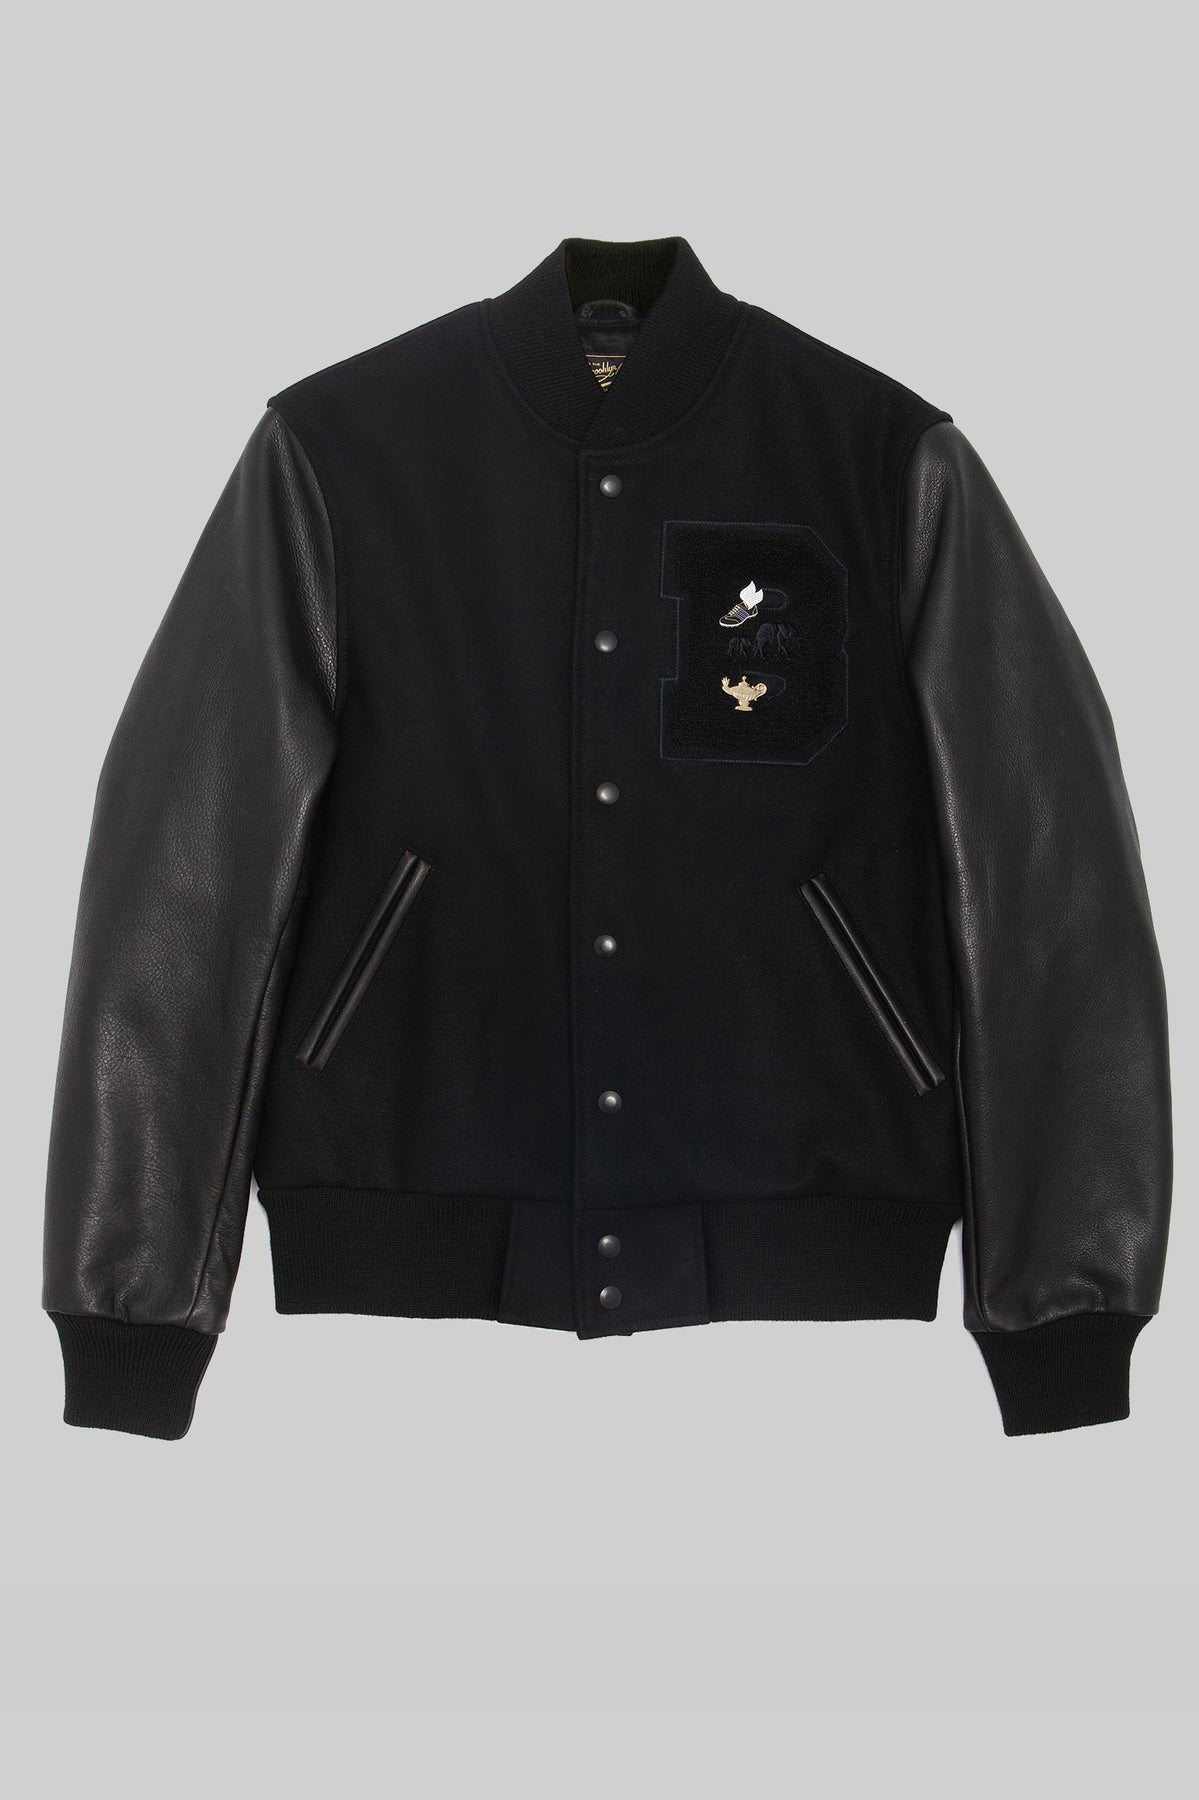 FINAL RELEASE: BKc Triple Black Bomber Varsity (S-3XL)